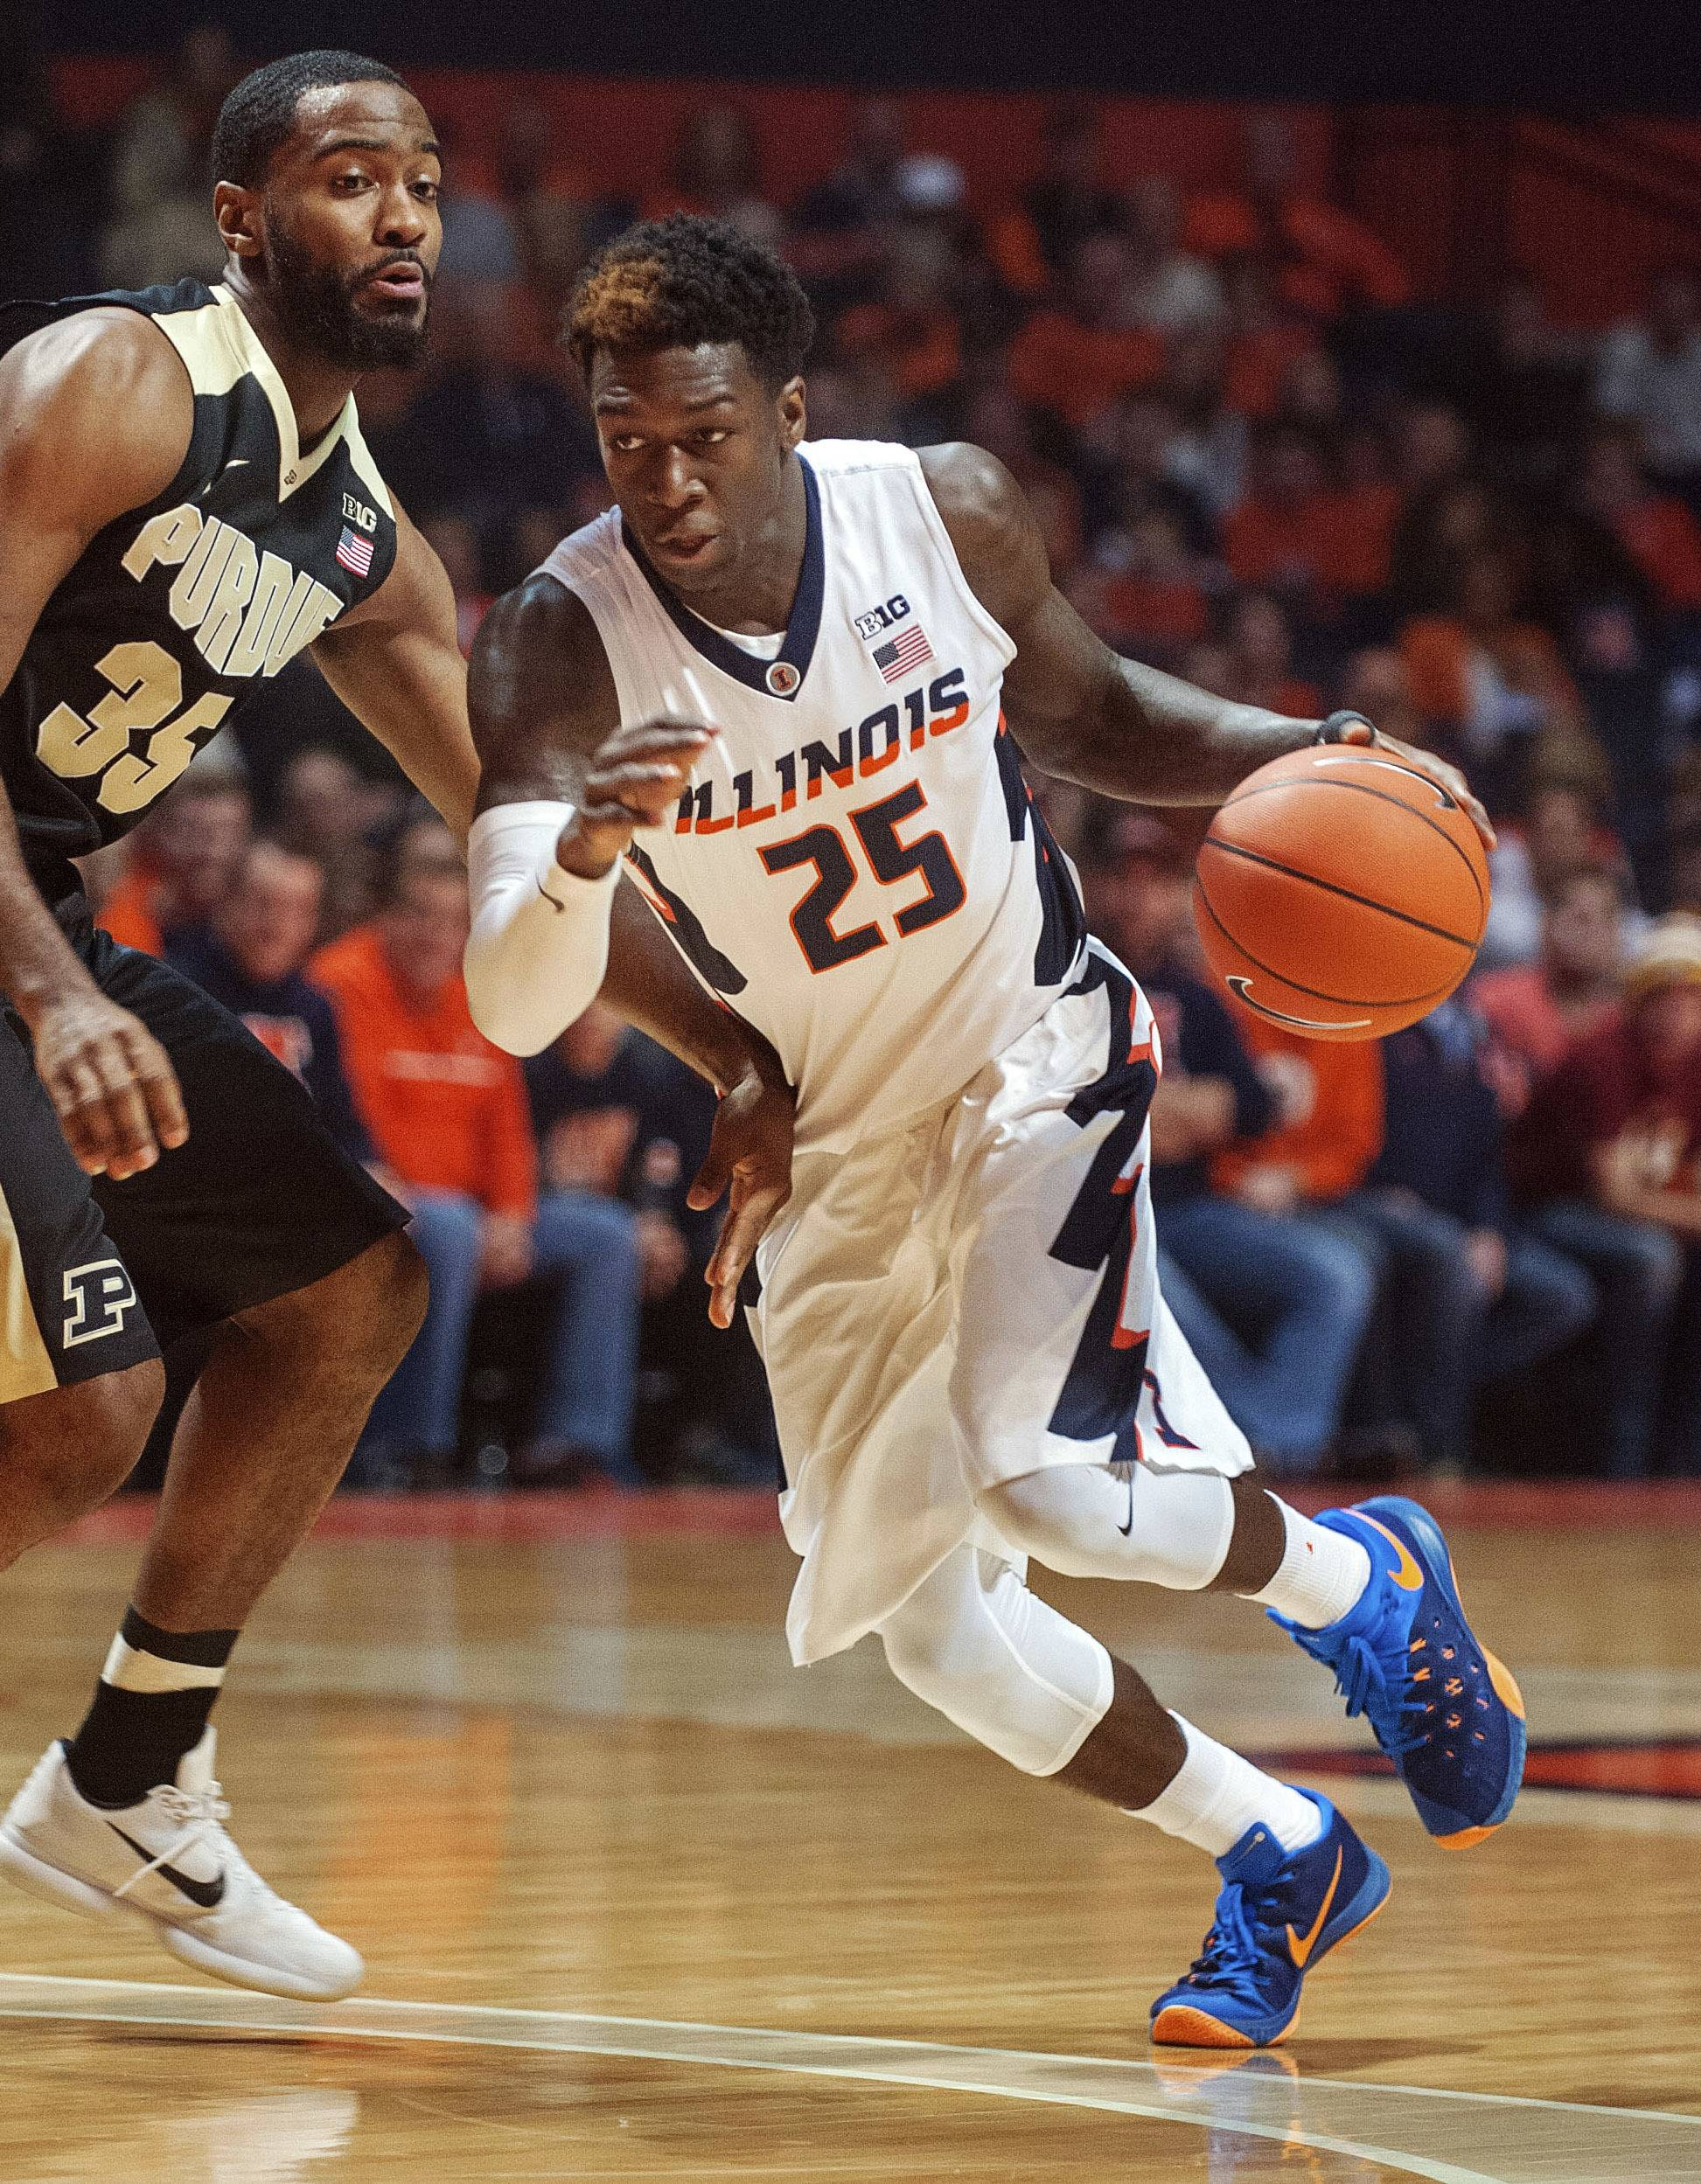 Illinois' Kendrick Nunn drives to the basket against Purdue in Champaign, Ill. Nunn was dismissed from the basketball team on Tuesday, following his guilty plea to misdemeanor domestic battery. He was arrested in March after being accused of striking a woman.